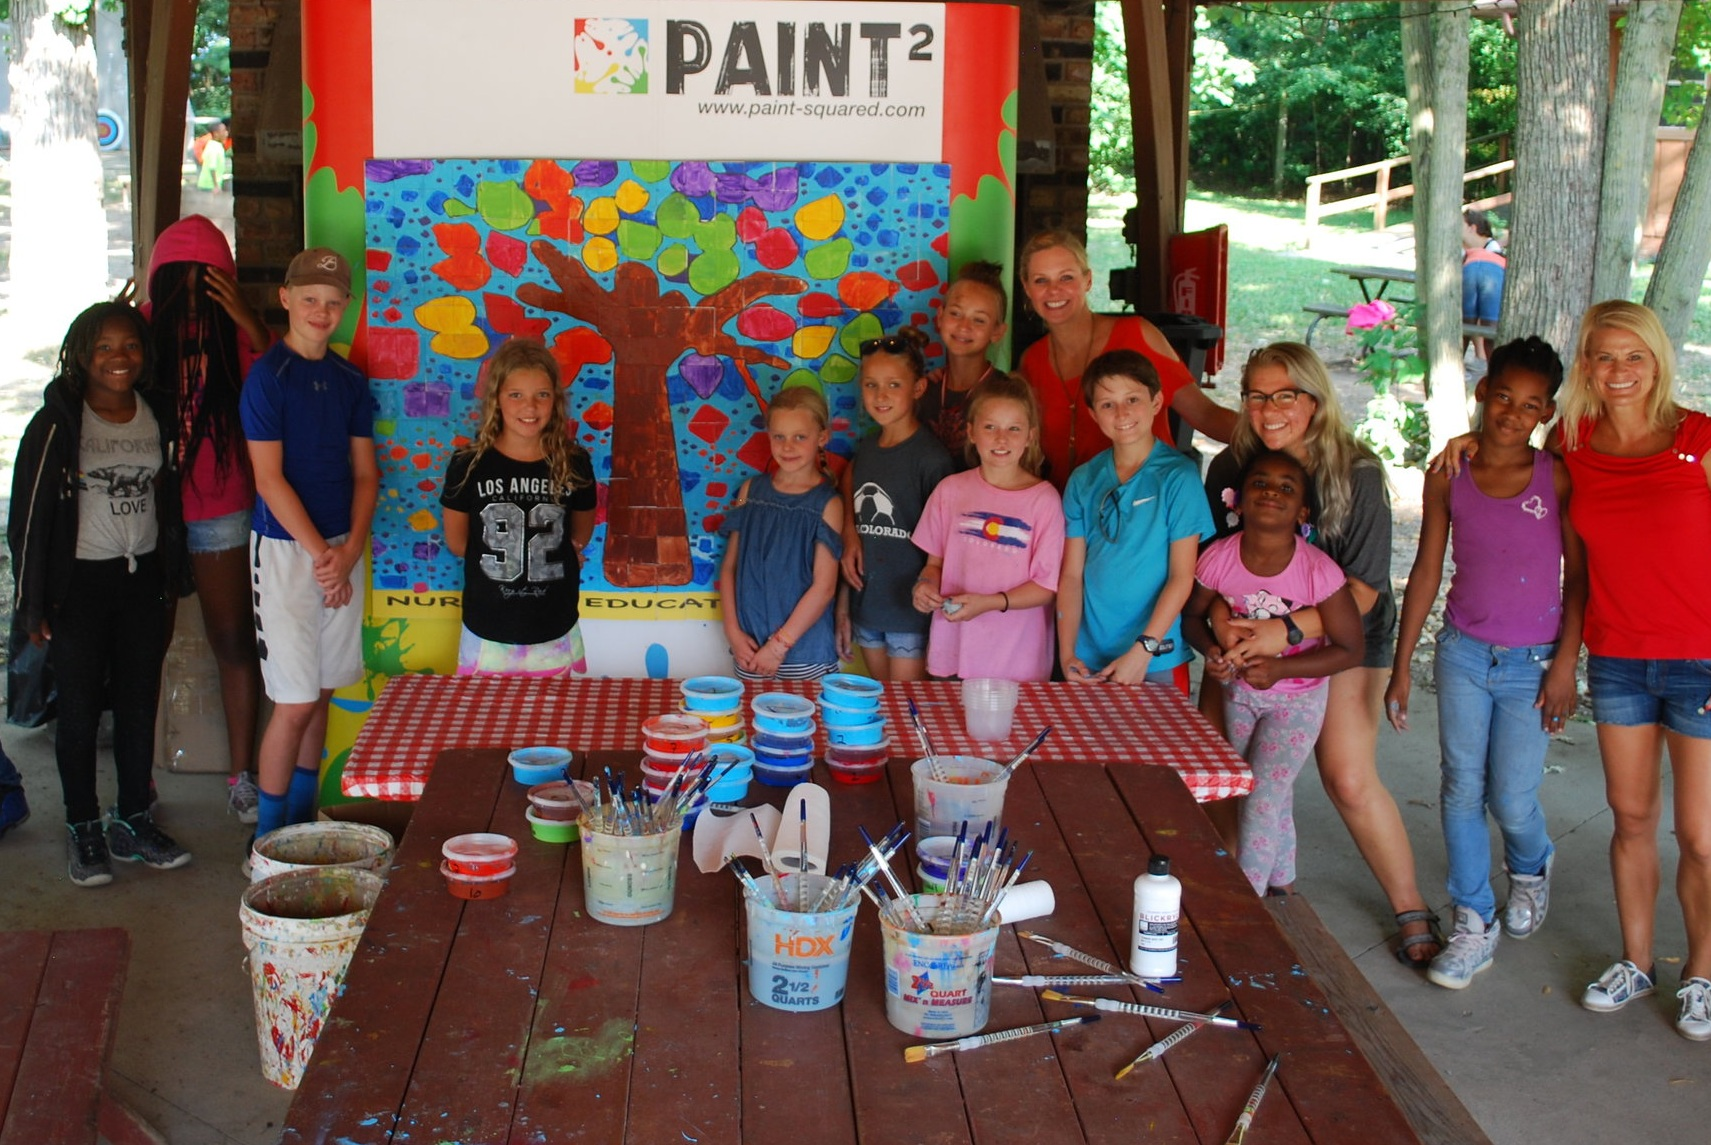 2019 Invitation Inspiration - Volunteers and campers painted tiles with enthusiasm and pride to create a one of a kind mural that will be permanently installed at House in the Wood Camp for generations to see.